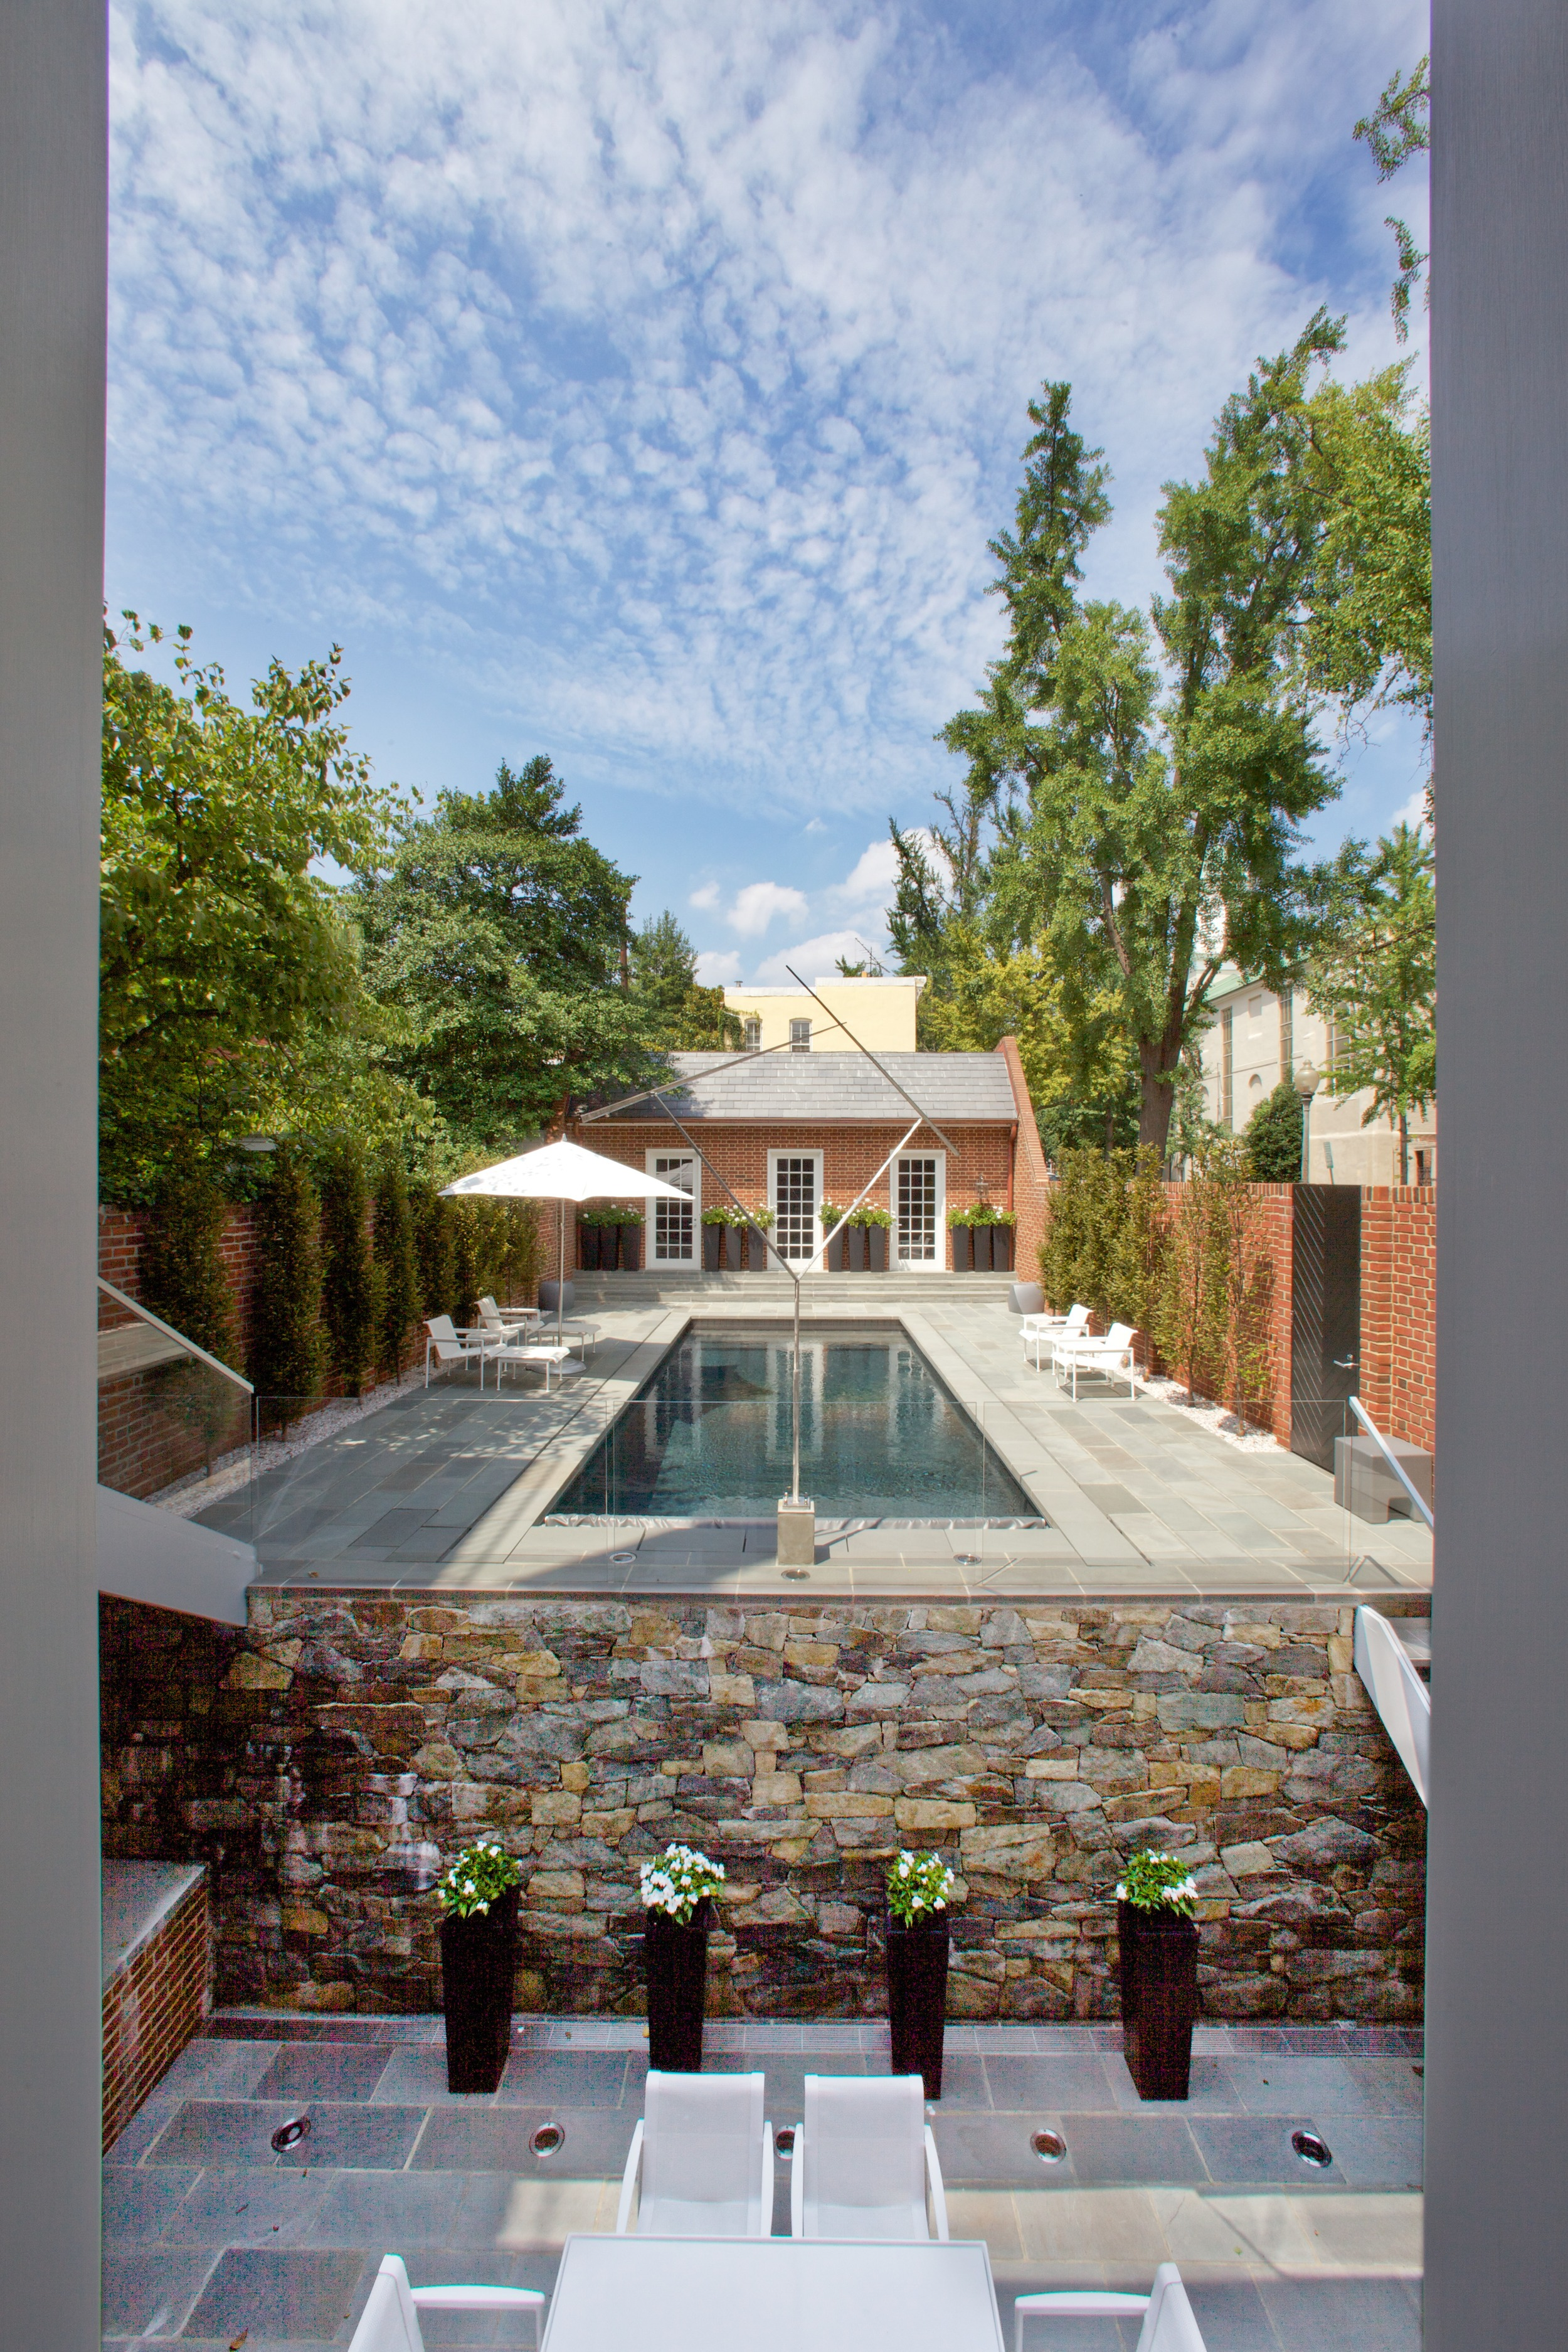 The garden and black bottom swimming pool.